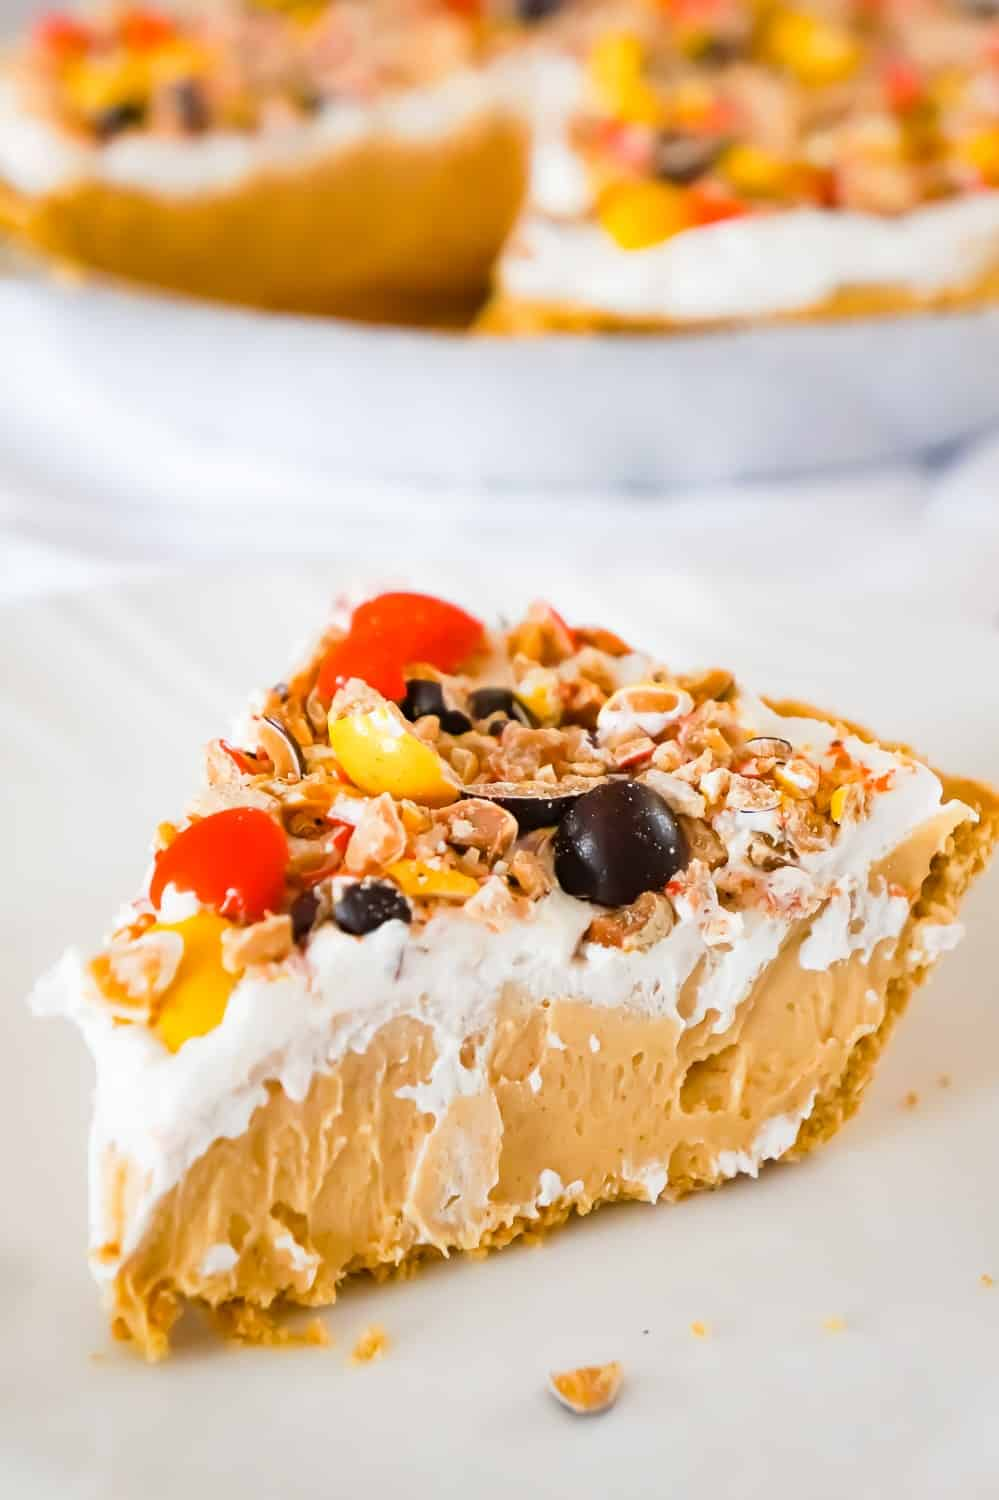 Peanut Butter Pie is an easy no bake dessert for peanut butter lovers. This no bake pie has a rich and creamy peanut butter filling, in a store bought graham crust and is topped with Cool Whip and Reese's Pieces Peanut candies.